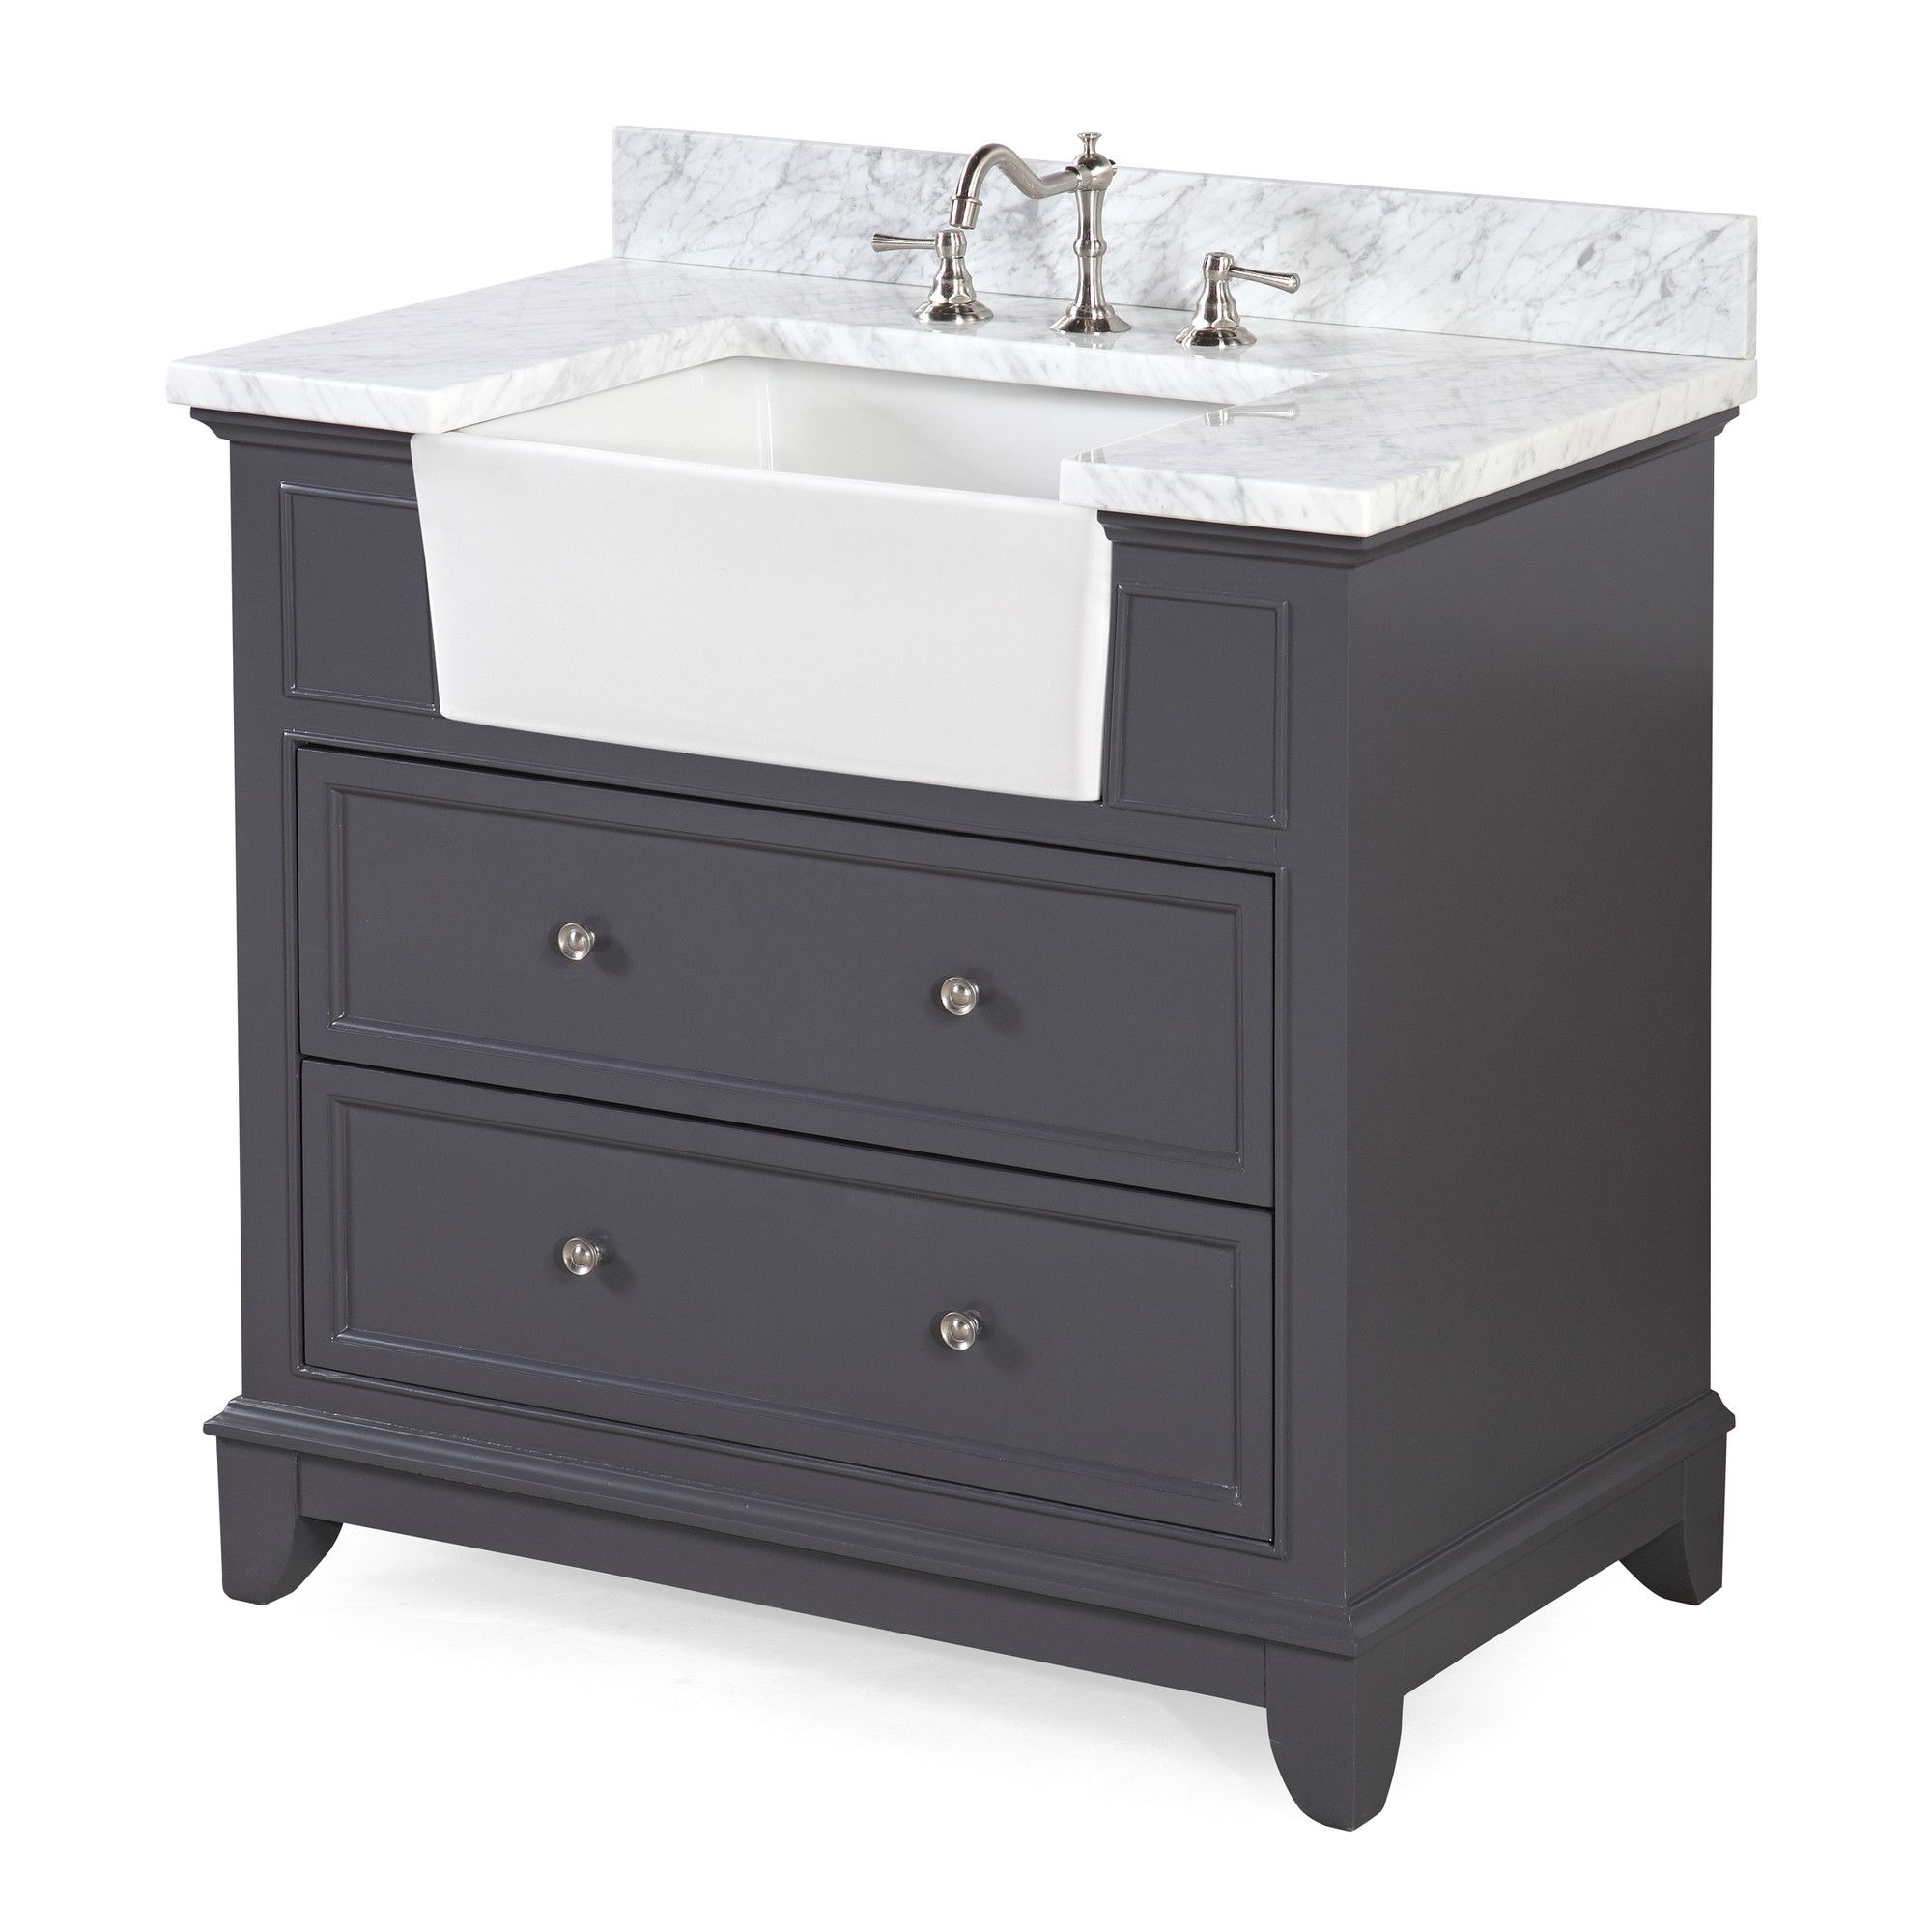 bathroom inspired brighten dorel products up eng perfect in size living vanity your and sourceimage with gray fresh european the vanities details aesthetic inviting otum to of